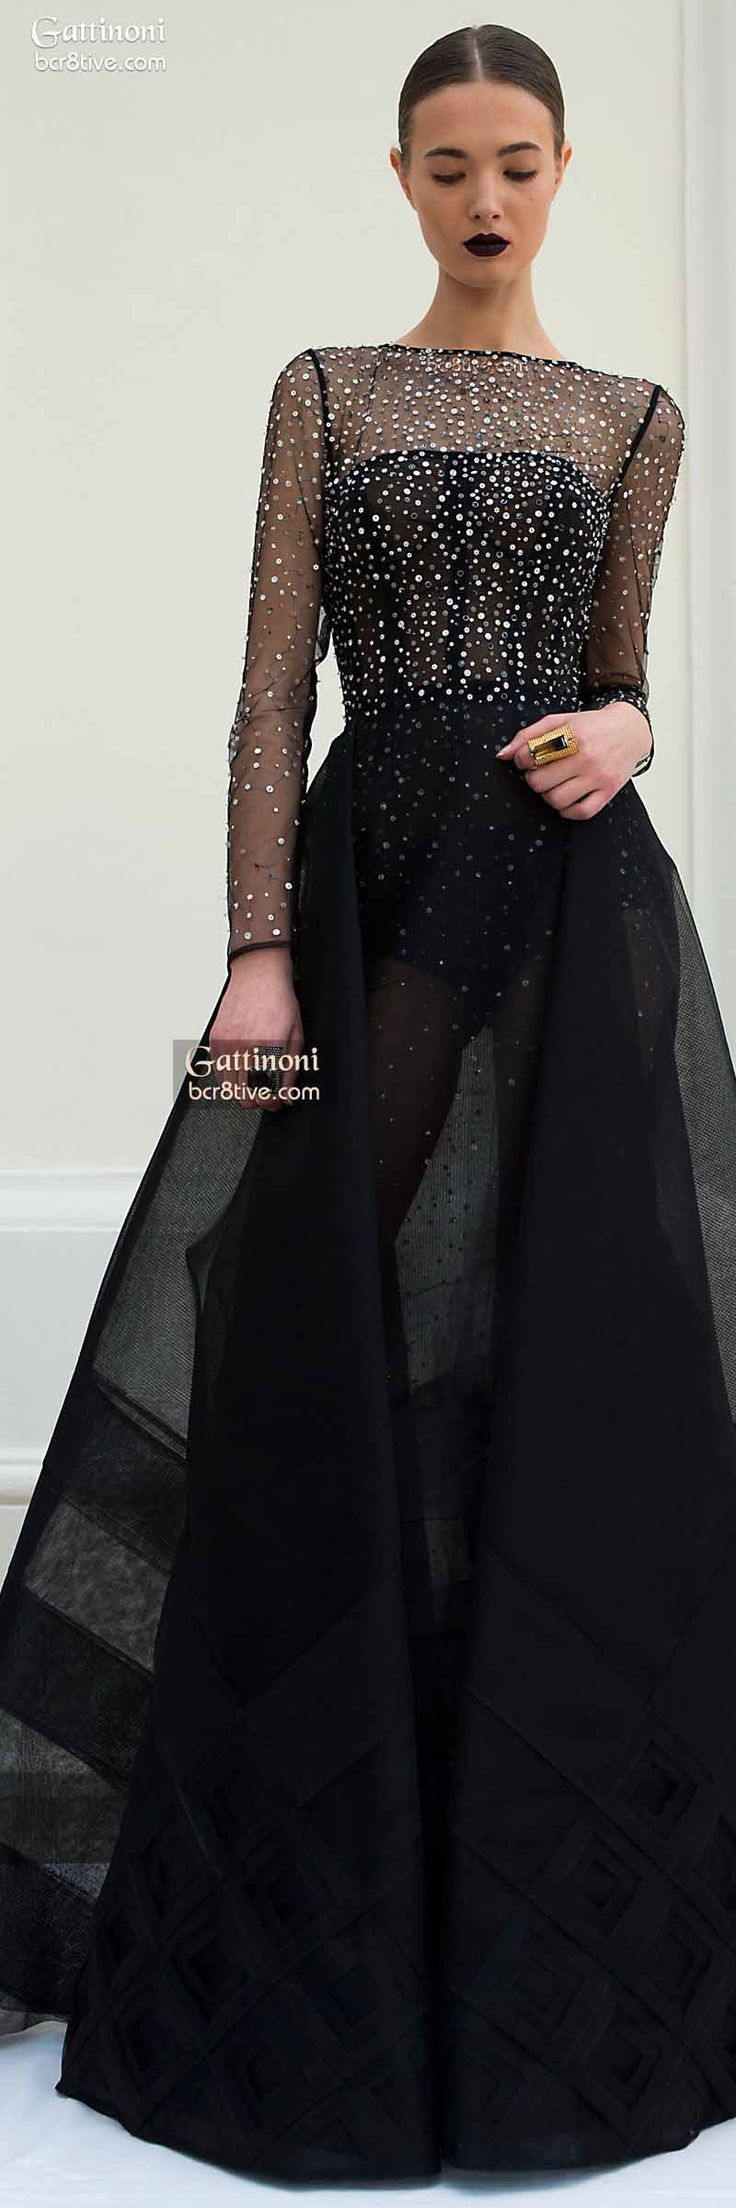 Black dress gown - Gattinoni Haute Couture Spring 2015 Black Sheer Embellished Dress Jaglady